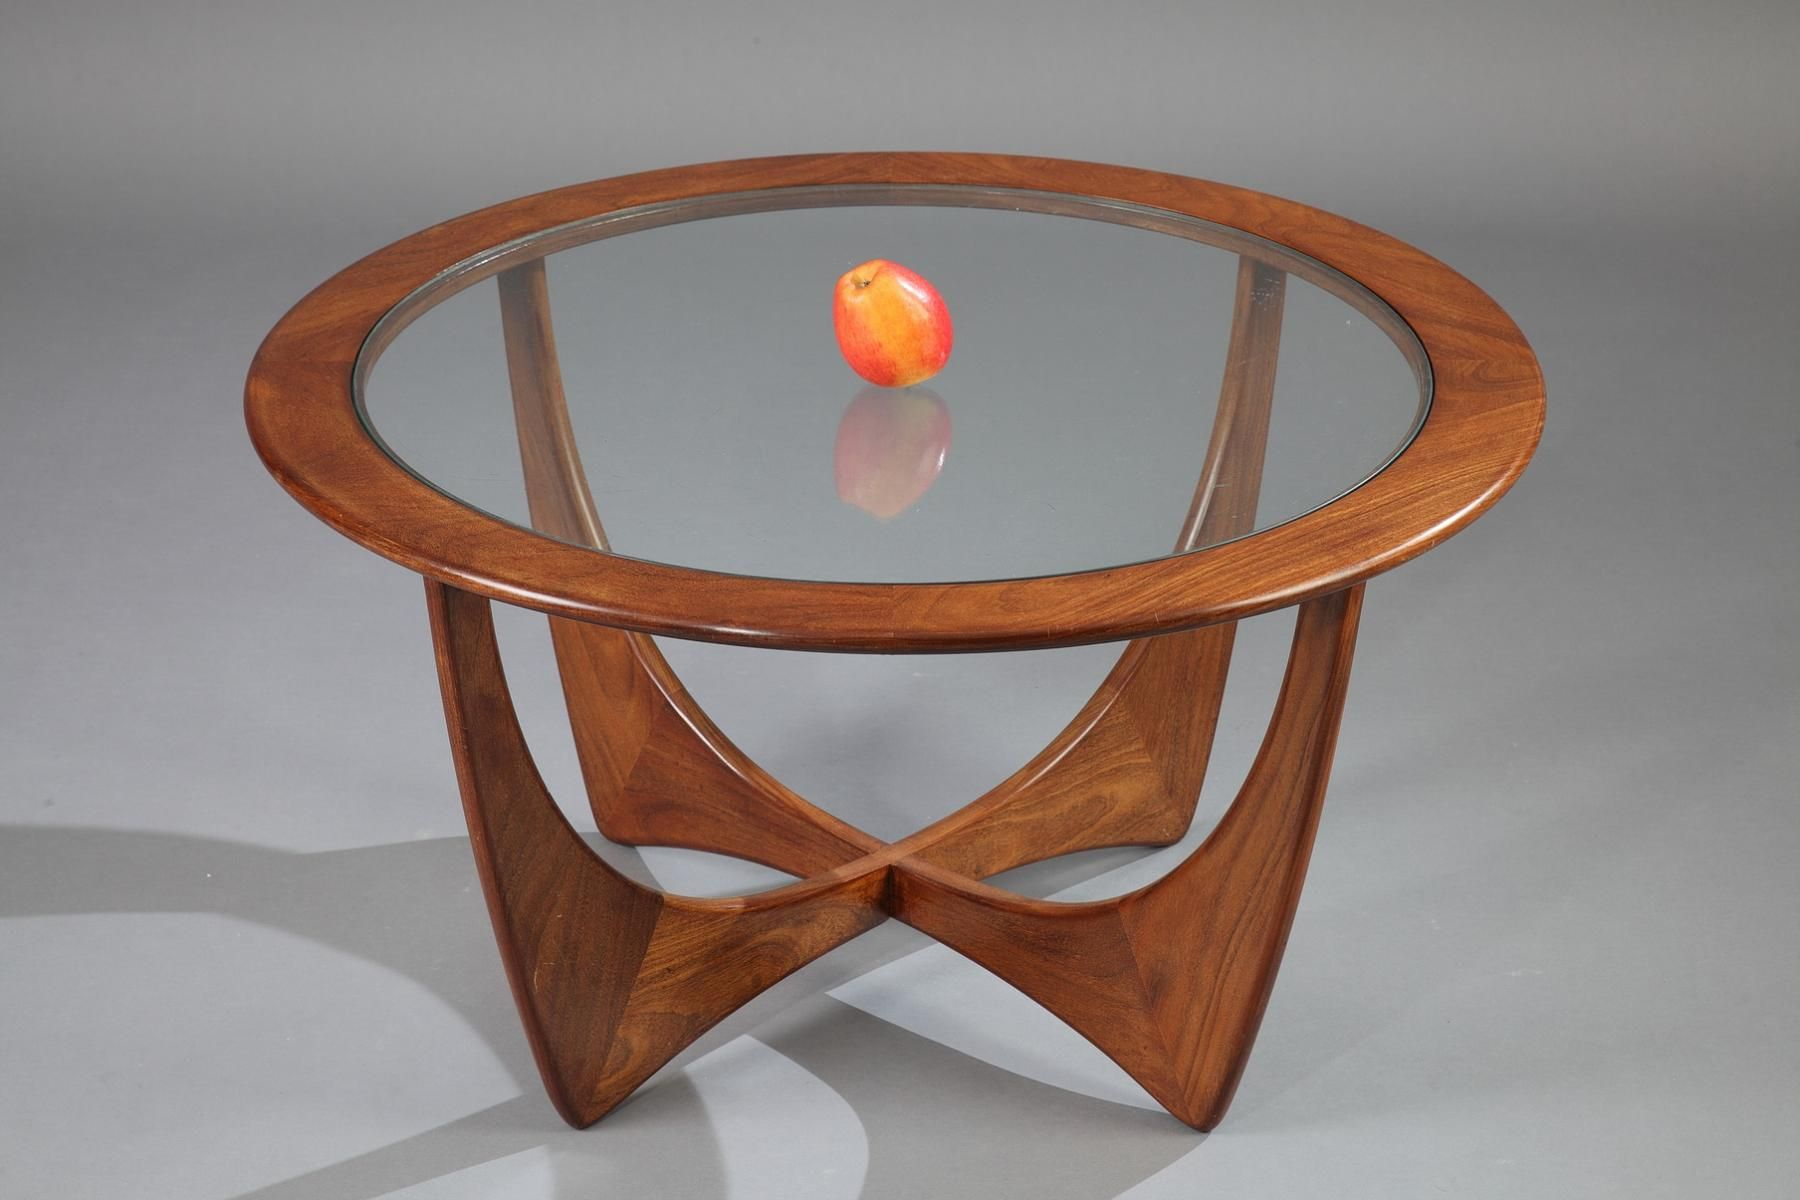 Round Astro Teak Coffee Table by Victor Wilkins for G Plan